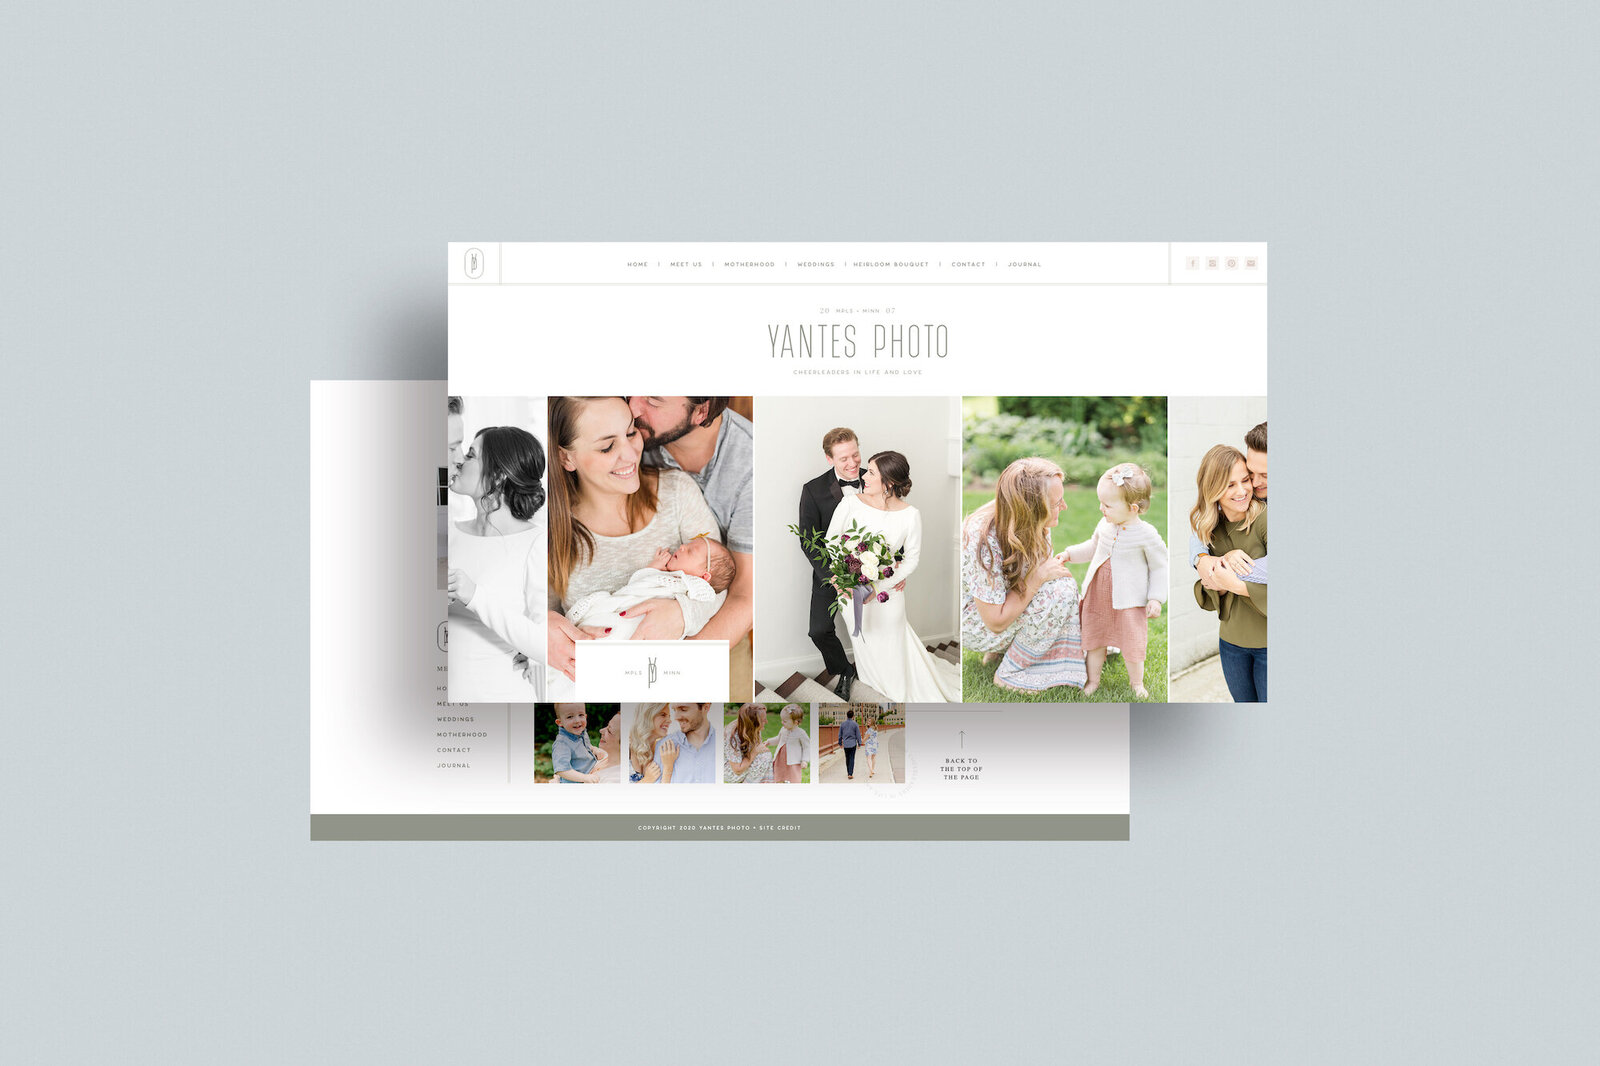 Ashley Yantes - Yantes Photo Custom Showit Web Website Design by With Grace and Gold